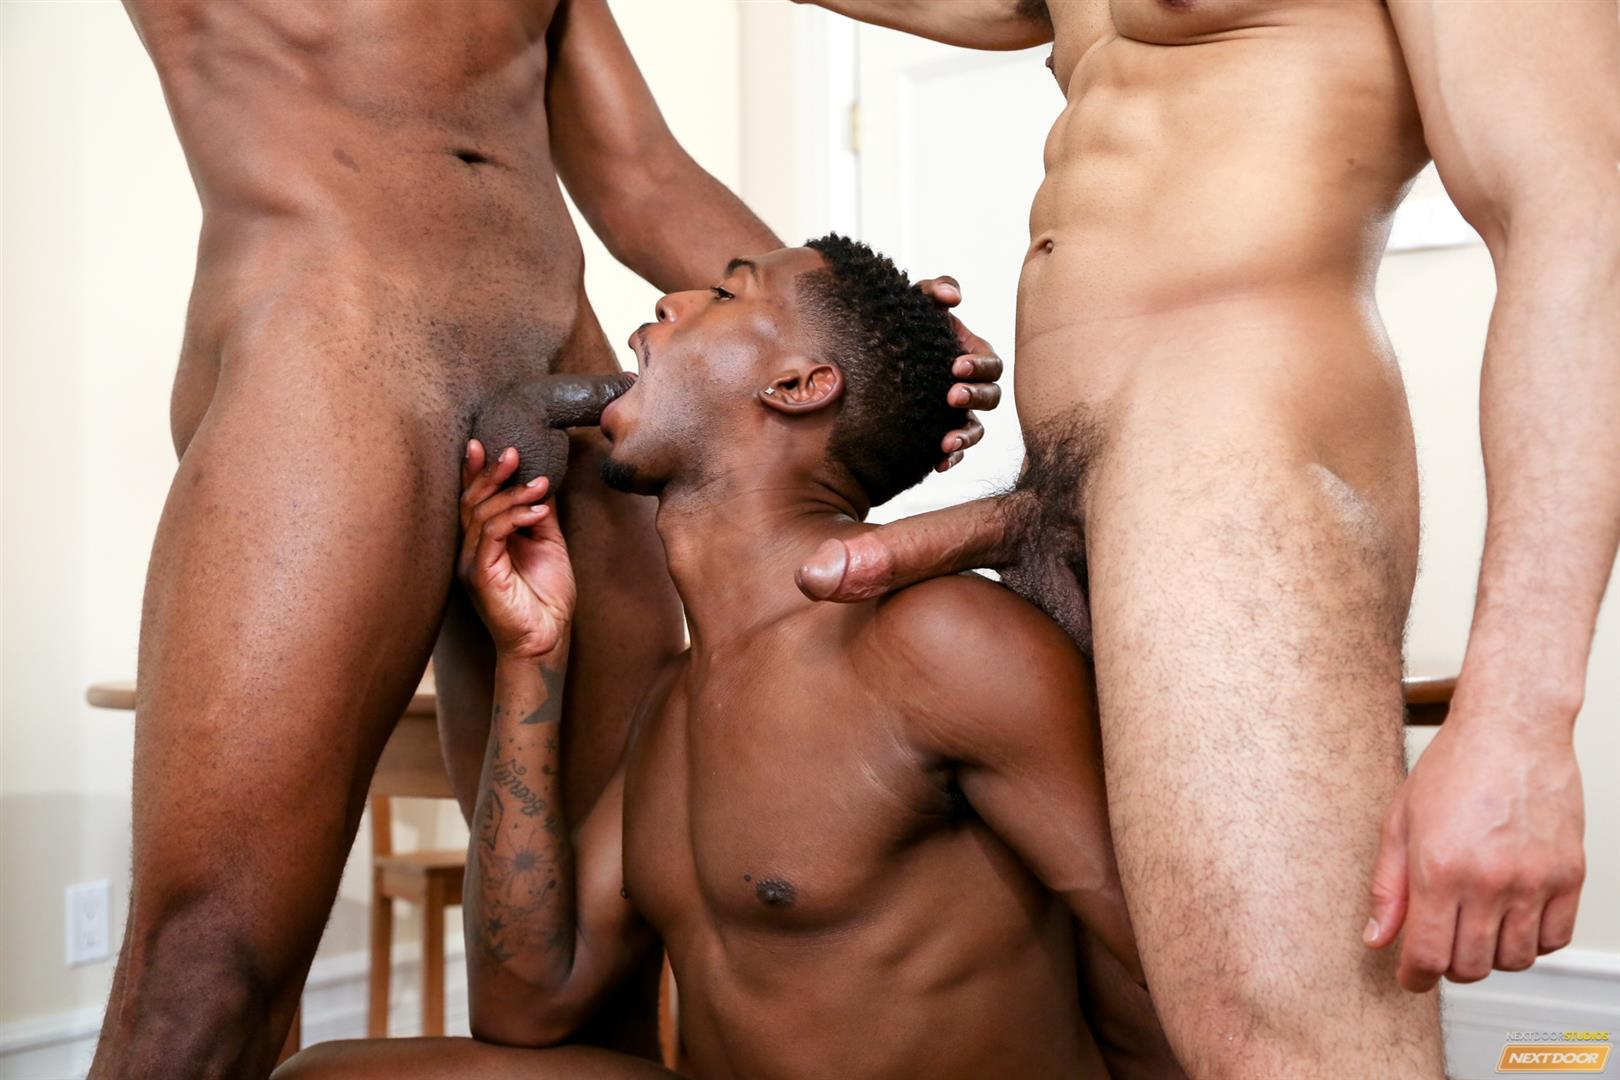 Next Door Ebony Krave Moore and Andre Donovan and Rex Cobra Big Black Cock Amateur Gay Porn 09 Three Black Guys Playing Strip Dominoes With Their Big Black Cocks